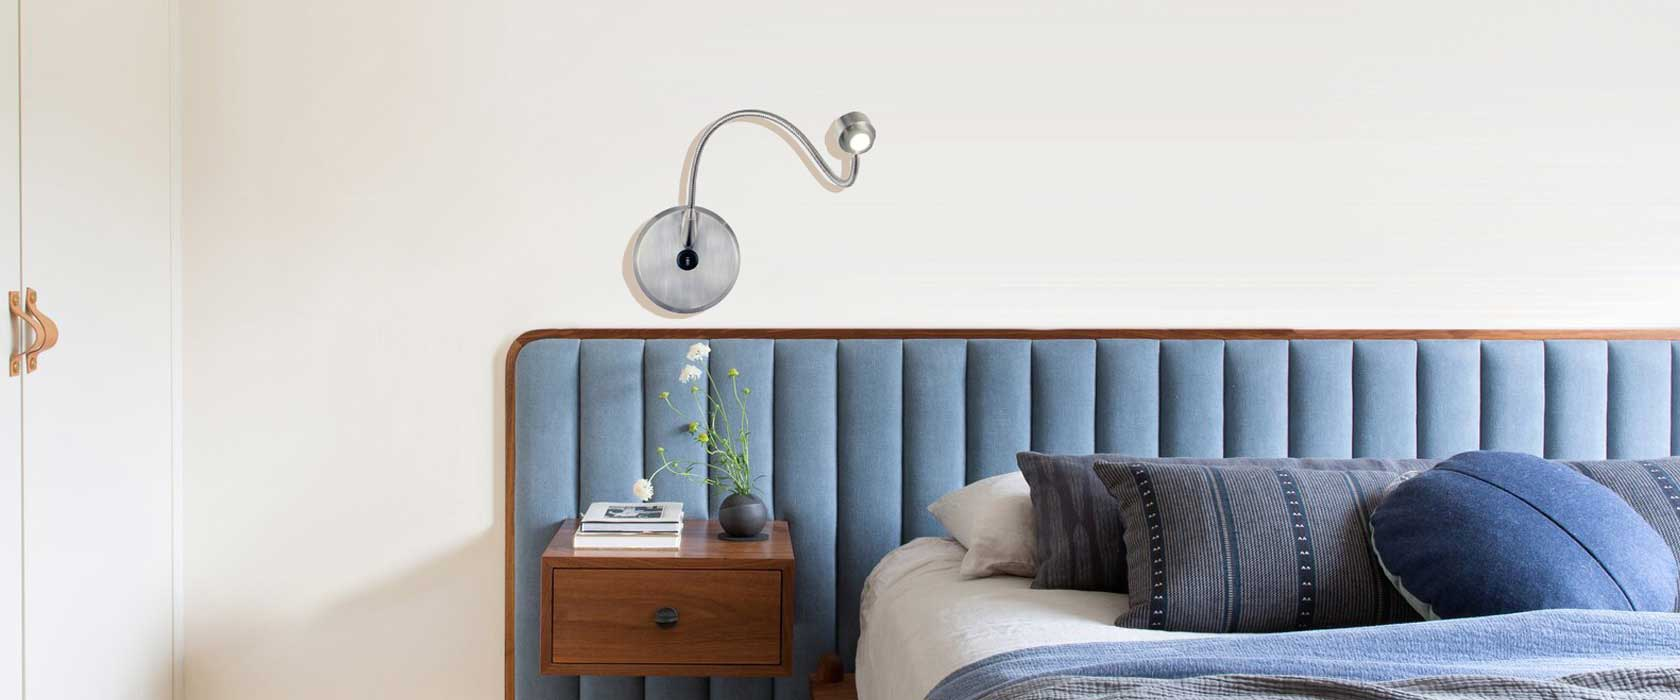 Gift With Purchase | Night Owl by PureEdge Lighting